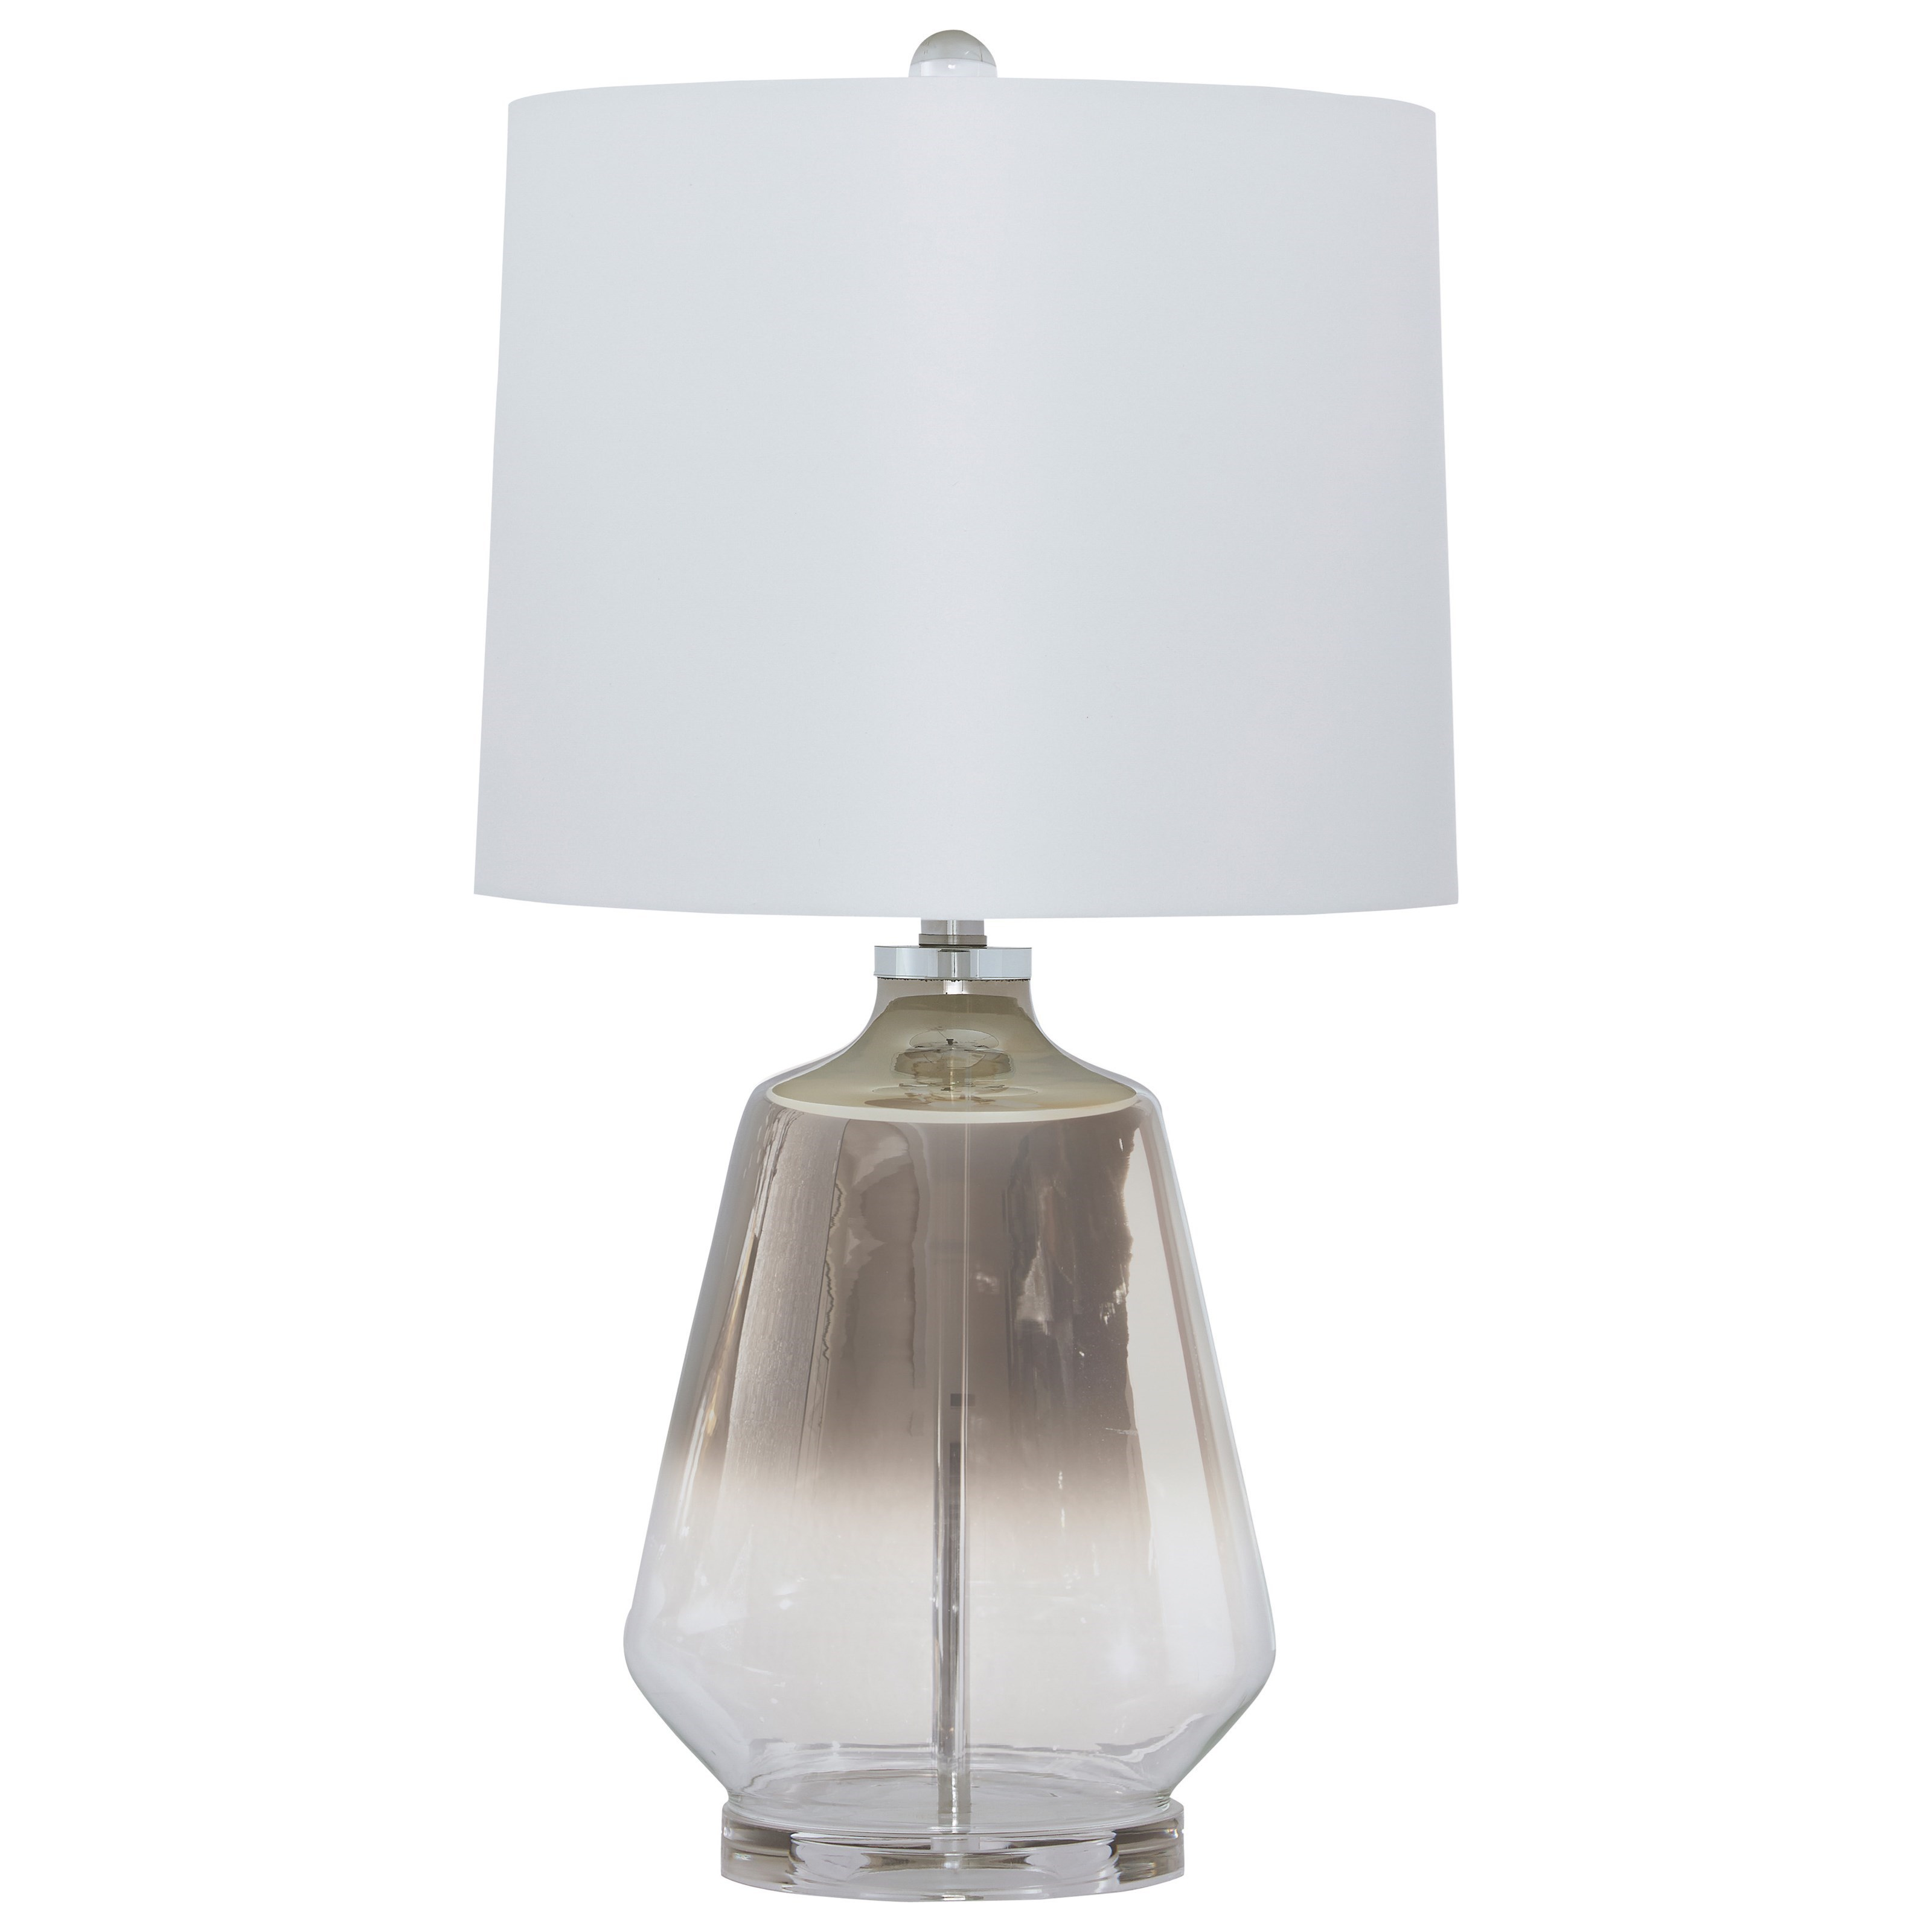 Lamps - Contemporary Jaslyn Glass Table Lamp by Signature at Walker's Furniture